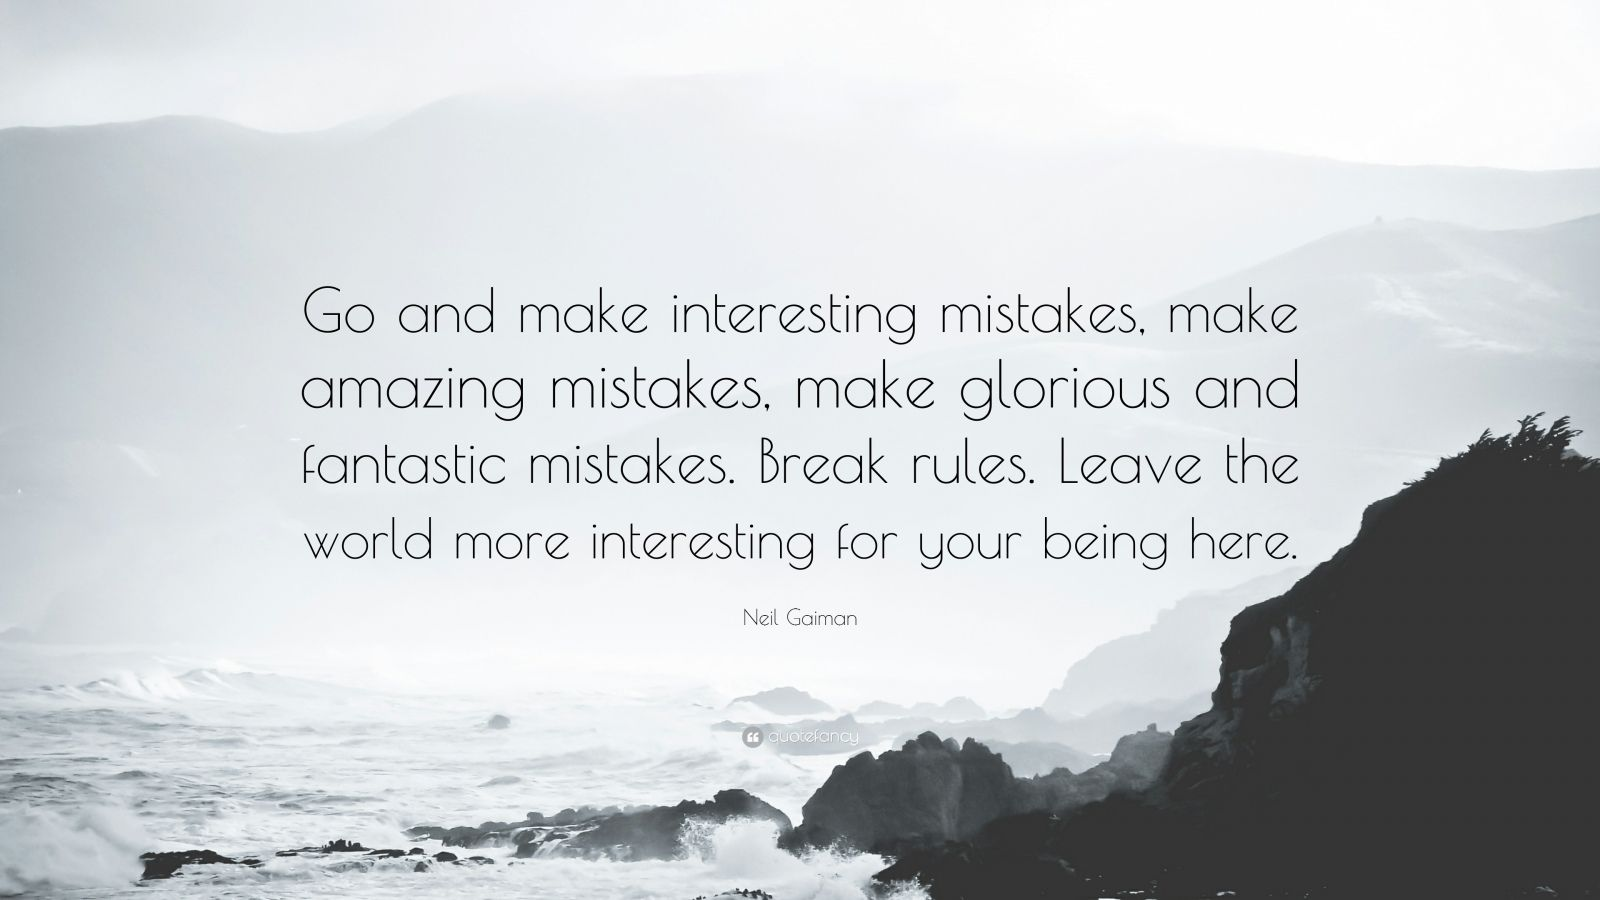 """Neil Gaiman Quote: """"Go and make interesting mistakes, make amazing mistakes, make glorious and fantastic mistakes. Break rules. Leave the world more interesting for your being here."""""""